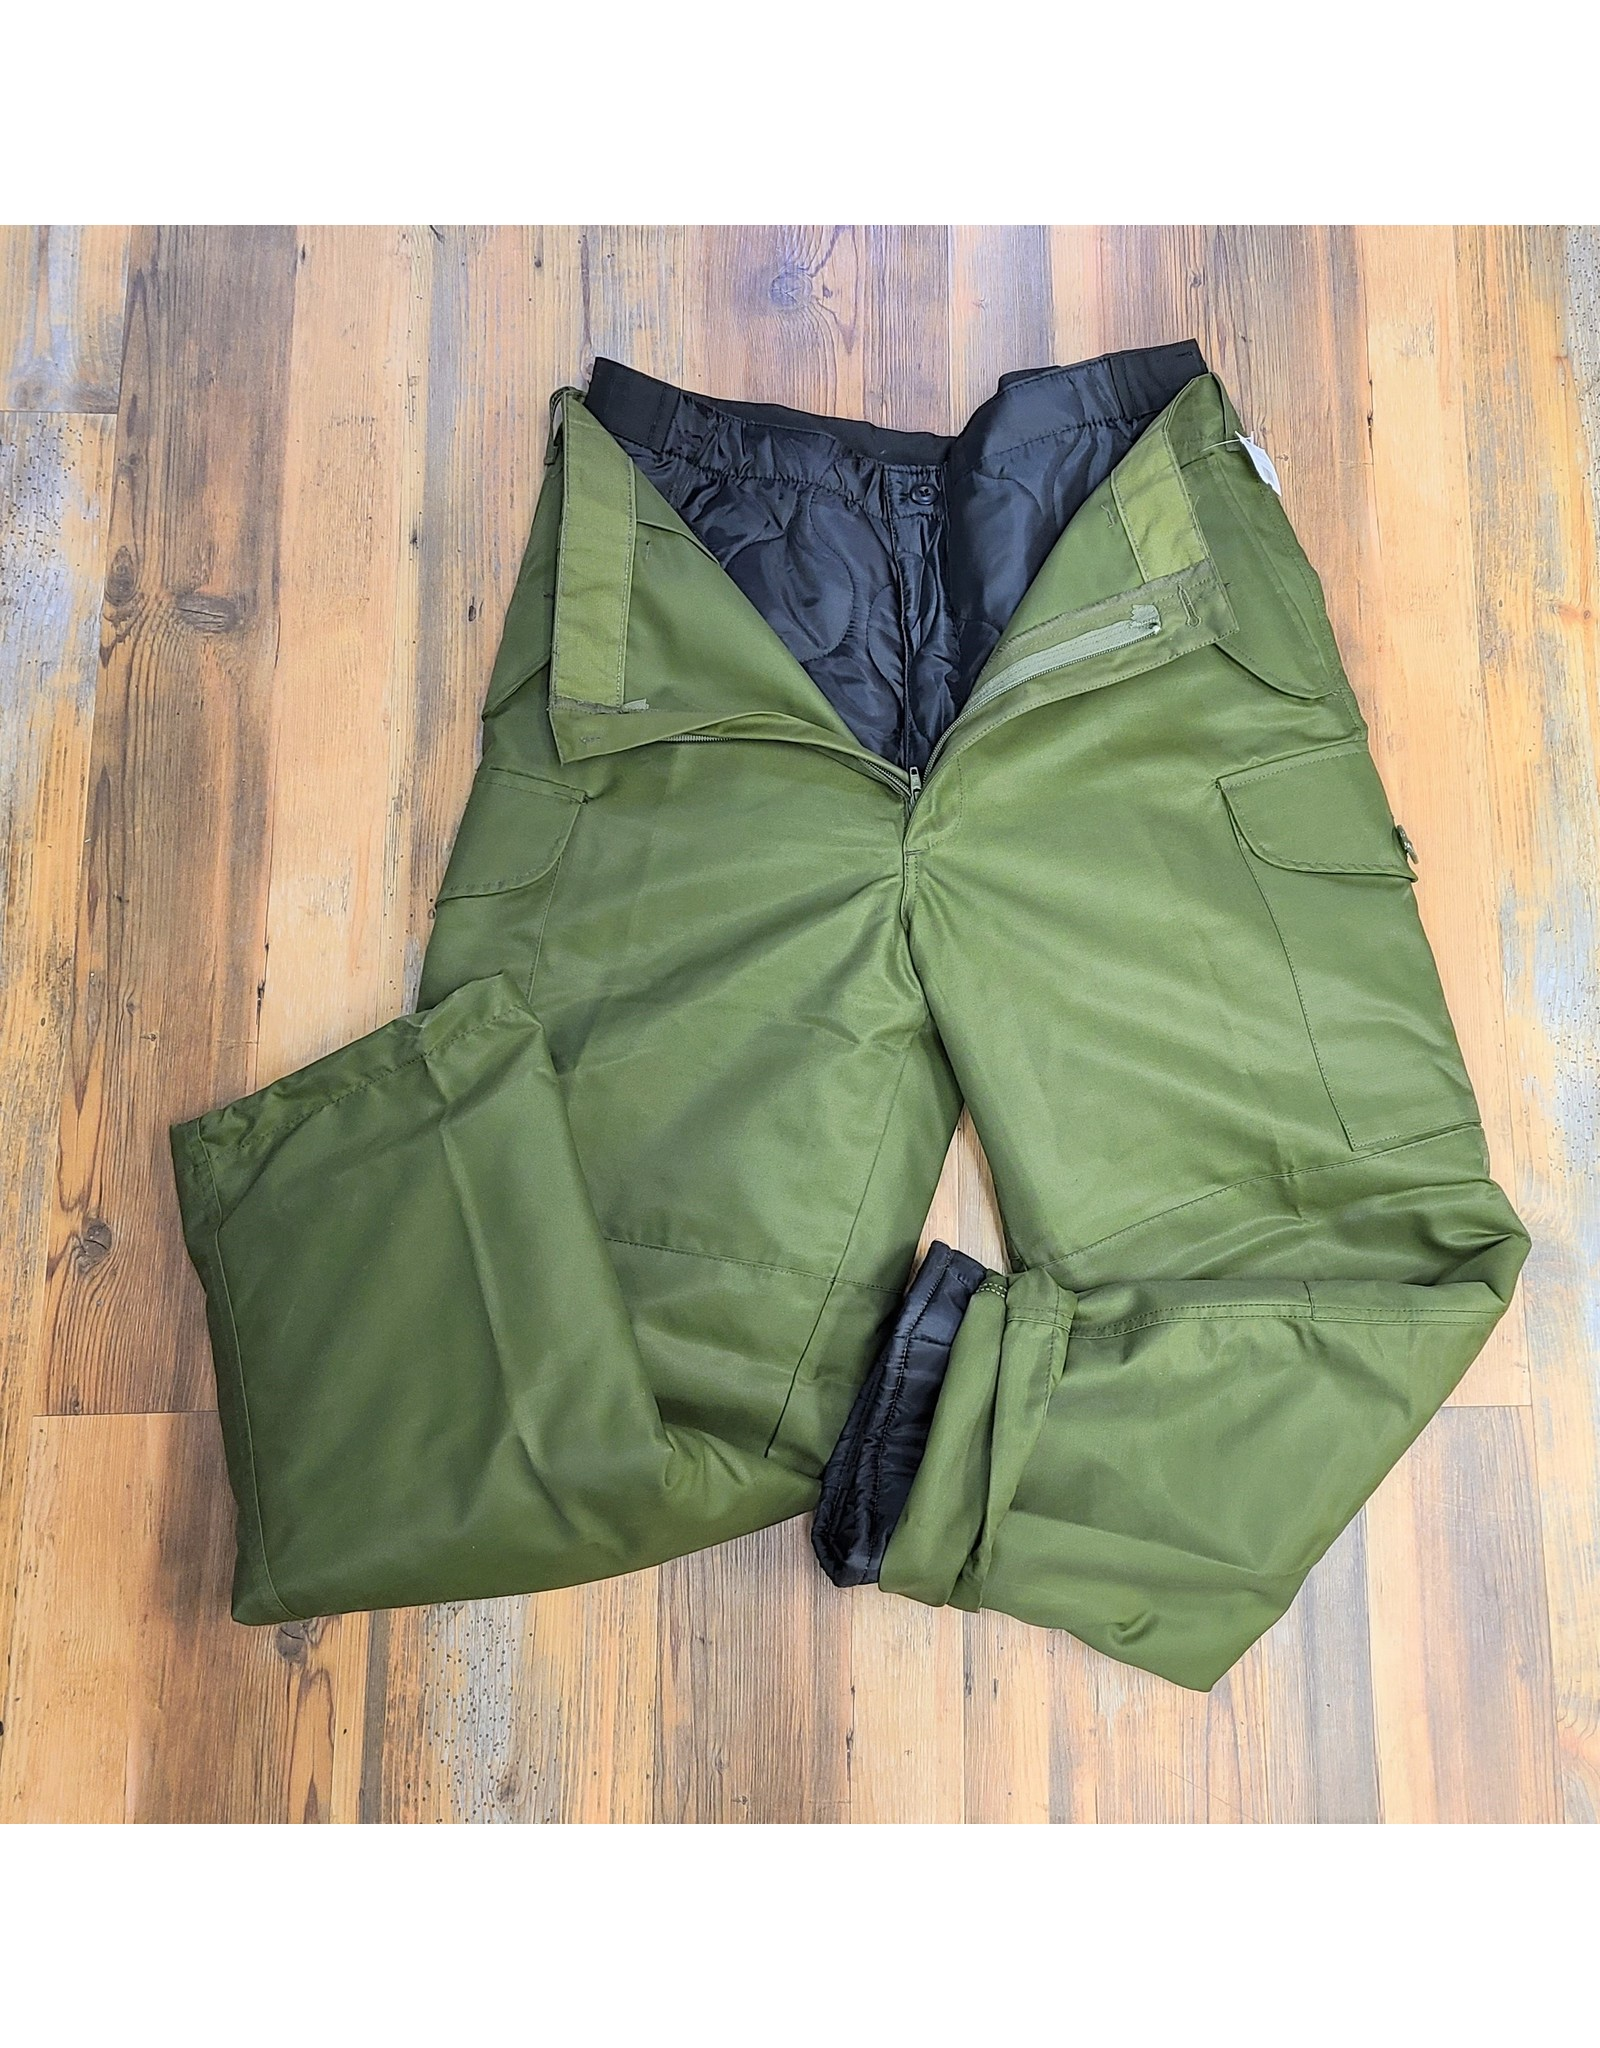 SGS CANADIAN M65 LINED WIND PANT